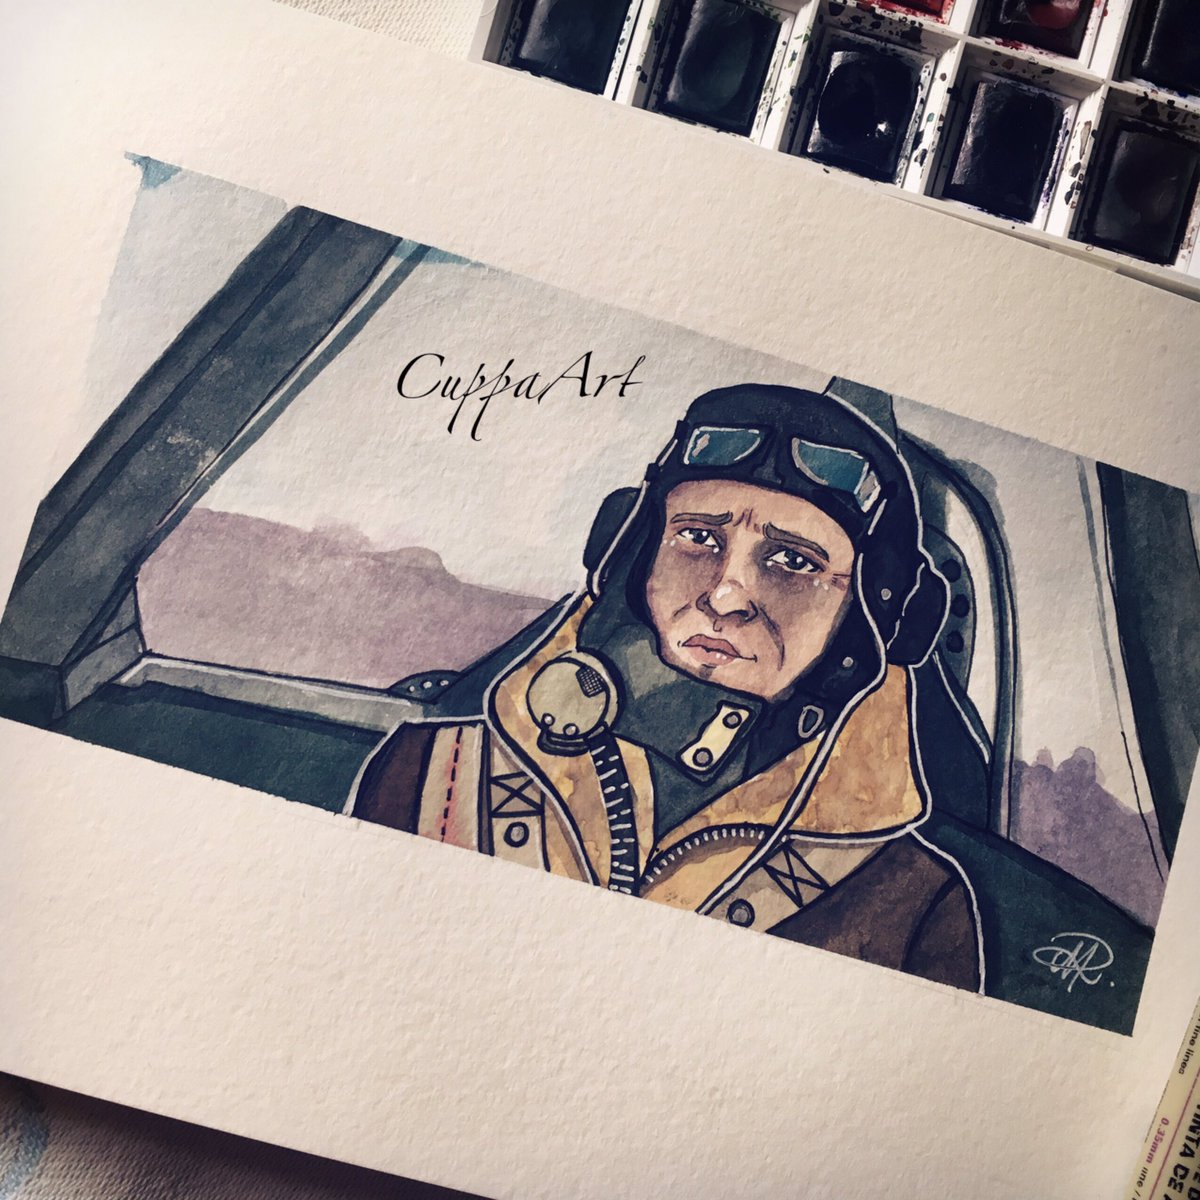 Real life Hero   Tom Hardy in Dunkirk   RTs are truly appreciated   #tomhardy #dunkirk#tomhardyfanart <br>http://pic.twitter.com/OsODetzZ5z